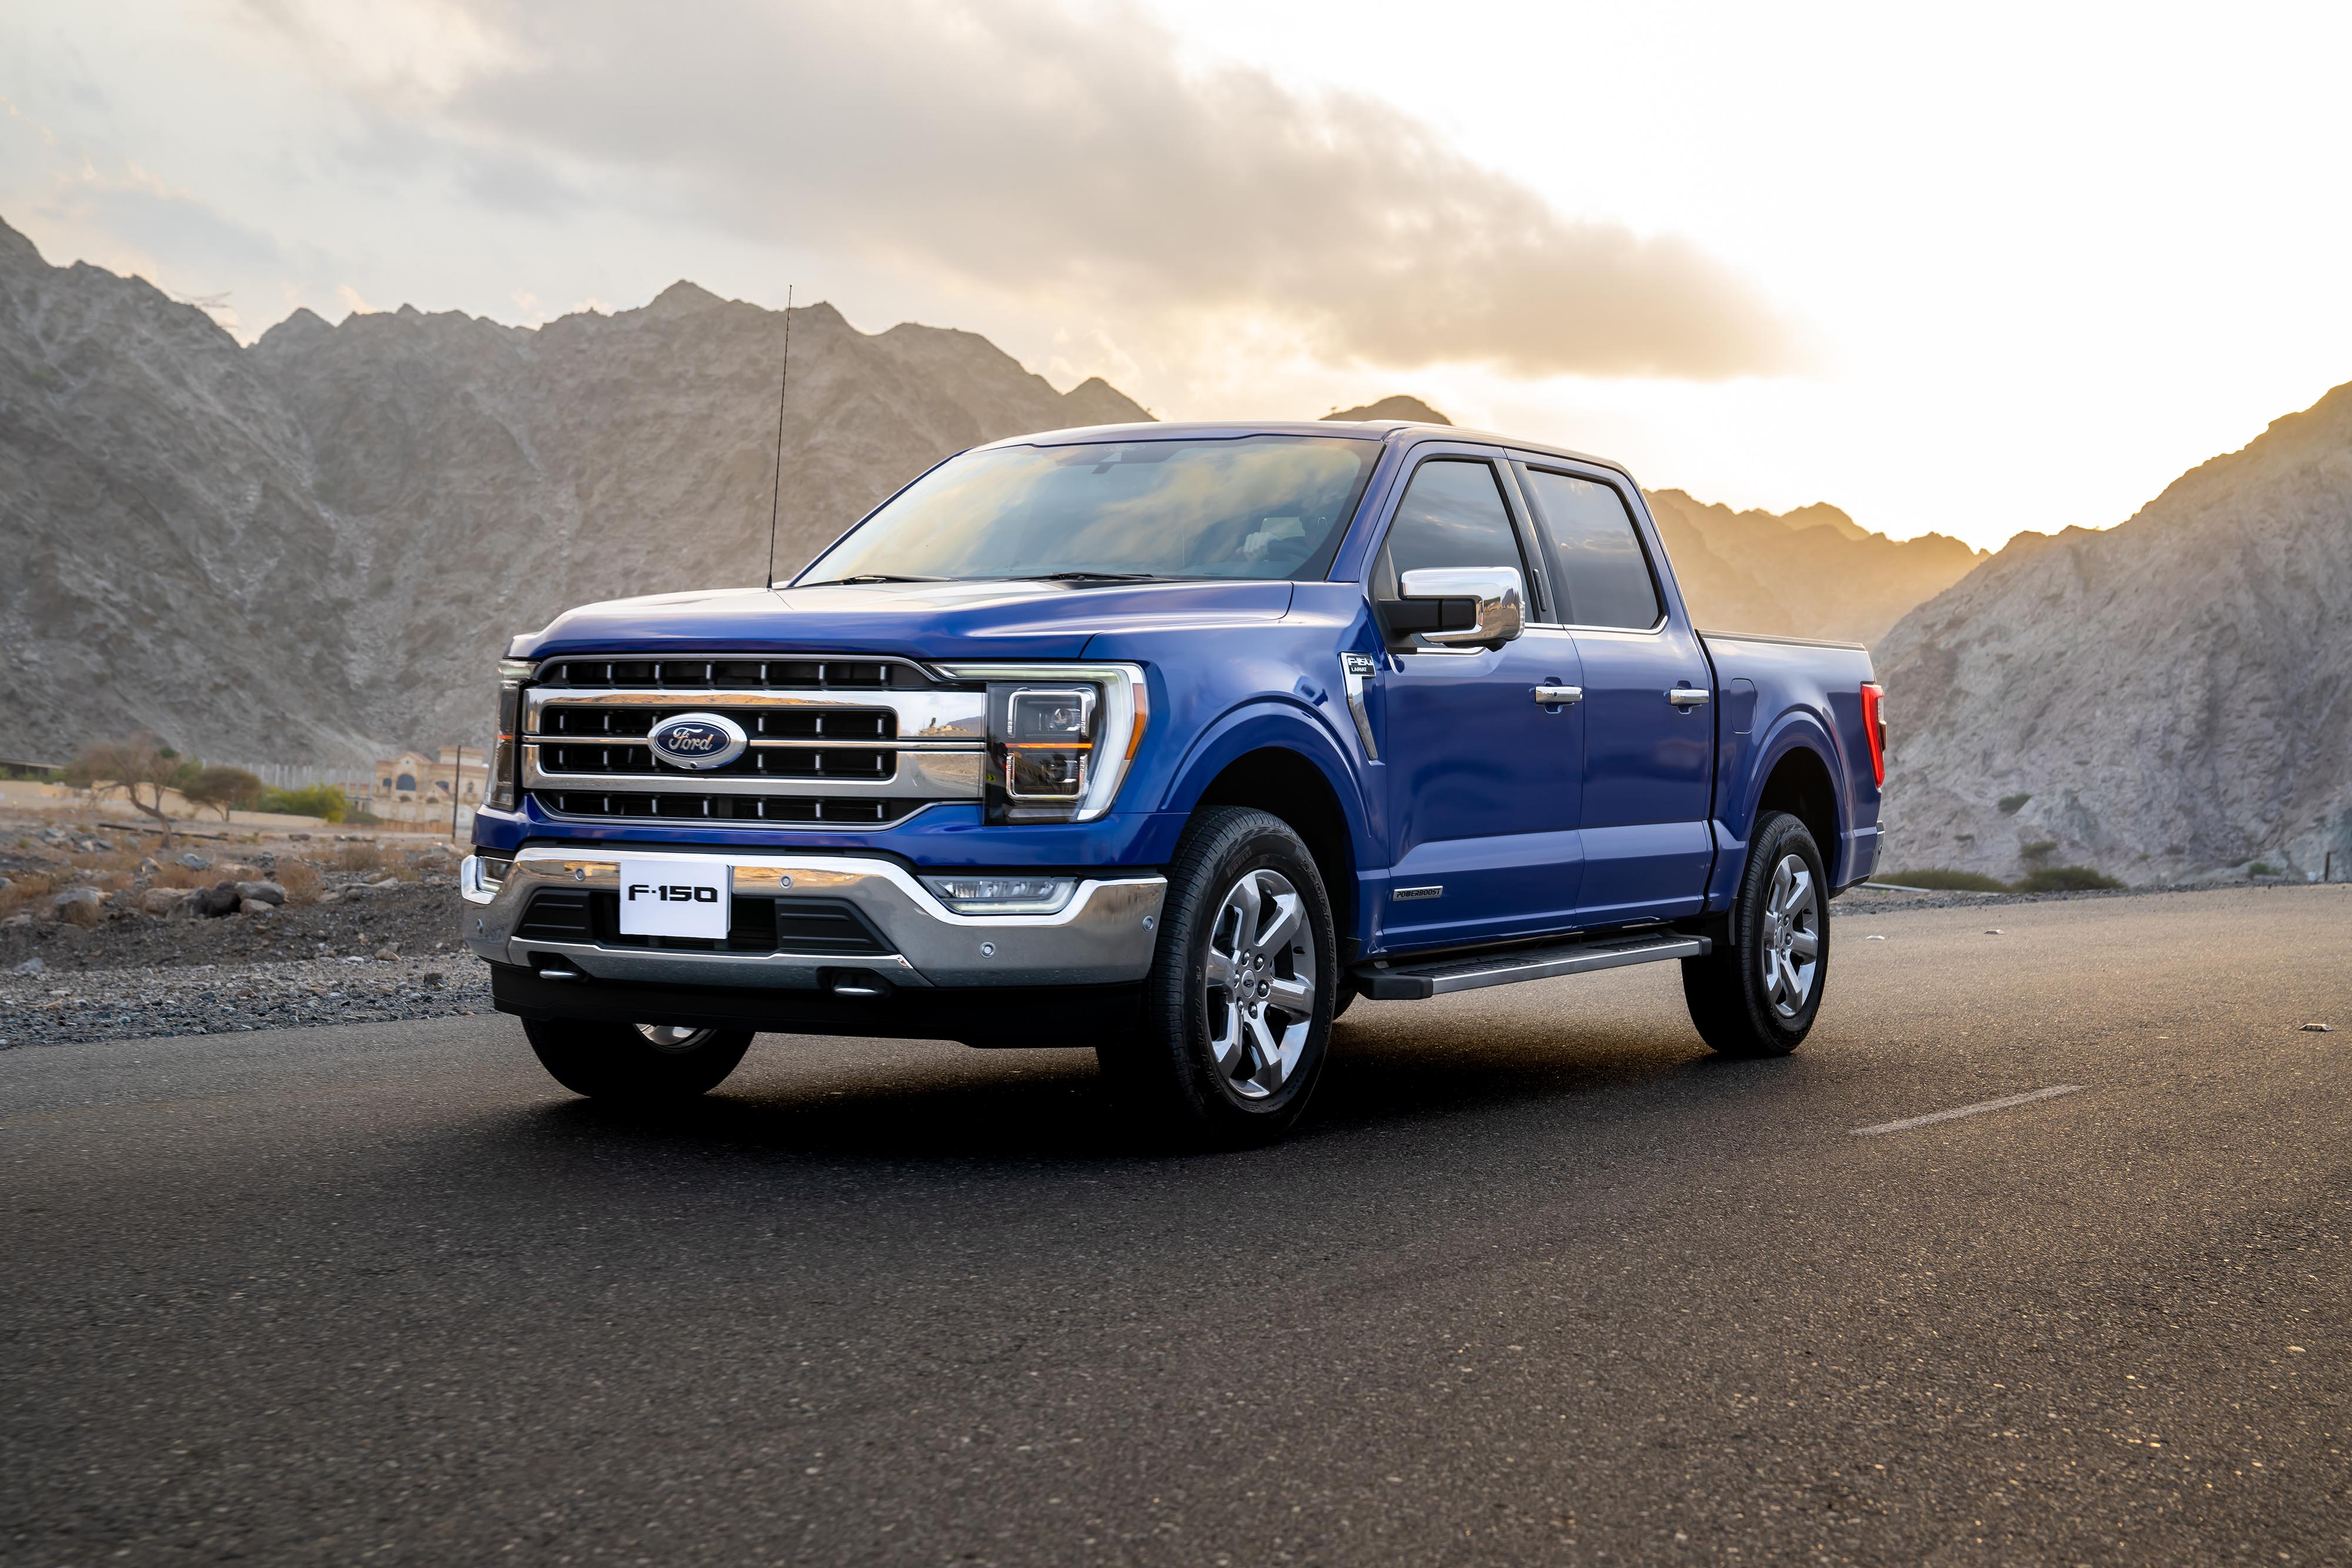 New F-150 Redefines Work And Play With Design Features That Power Your Passion For Adventure